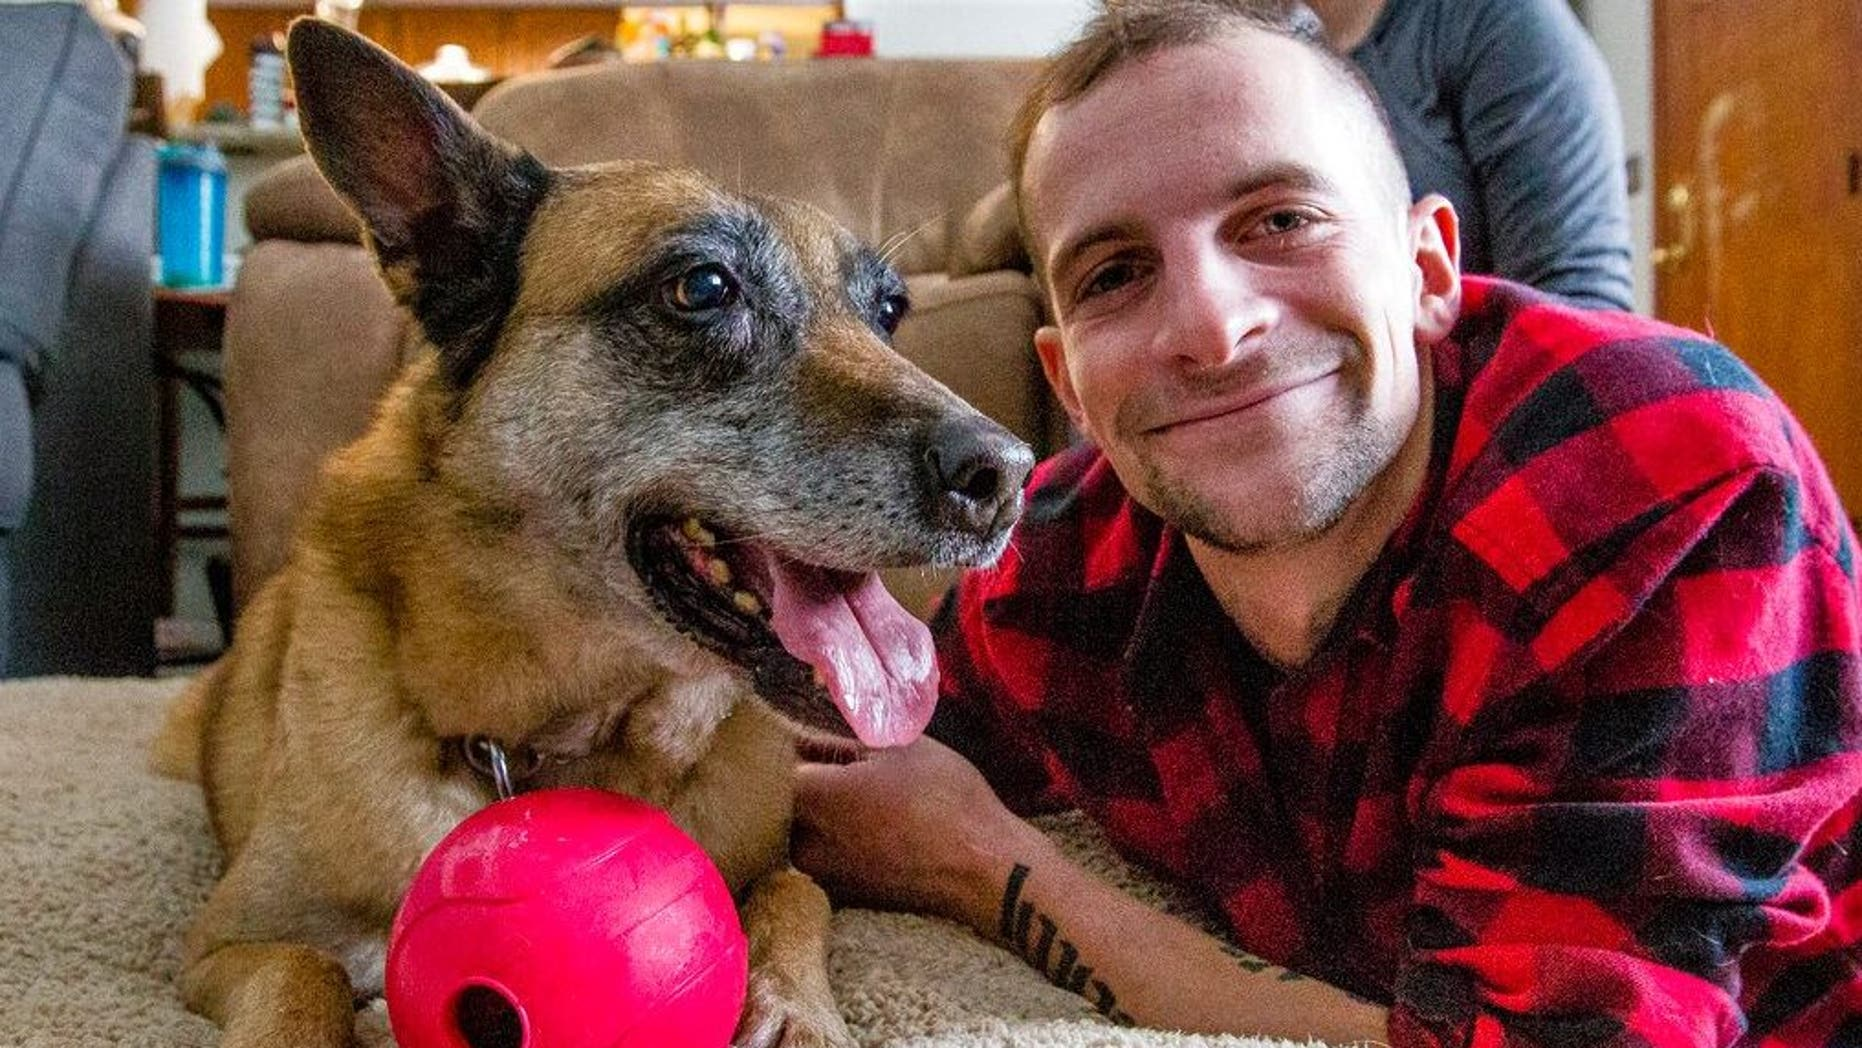 Veteran Joe Steenbeke was reunited with Tess on Saturday after the two served together in Afghanistan years ago.